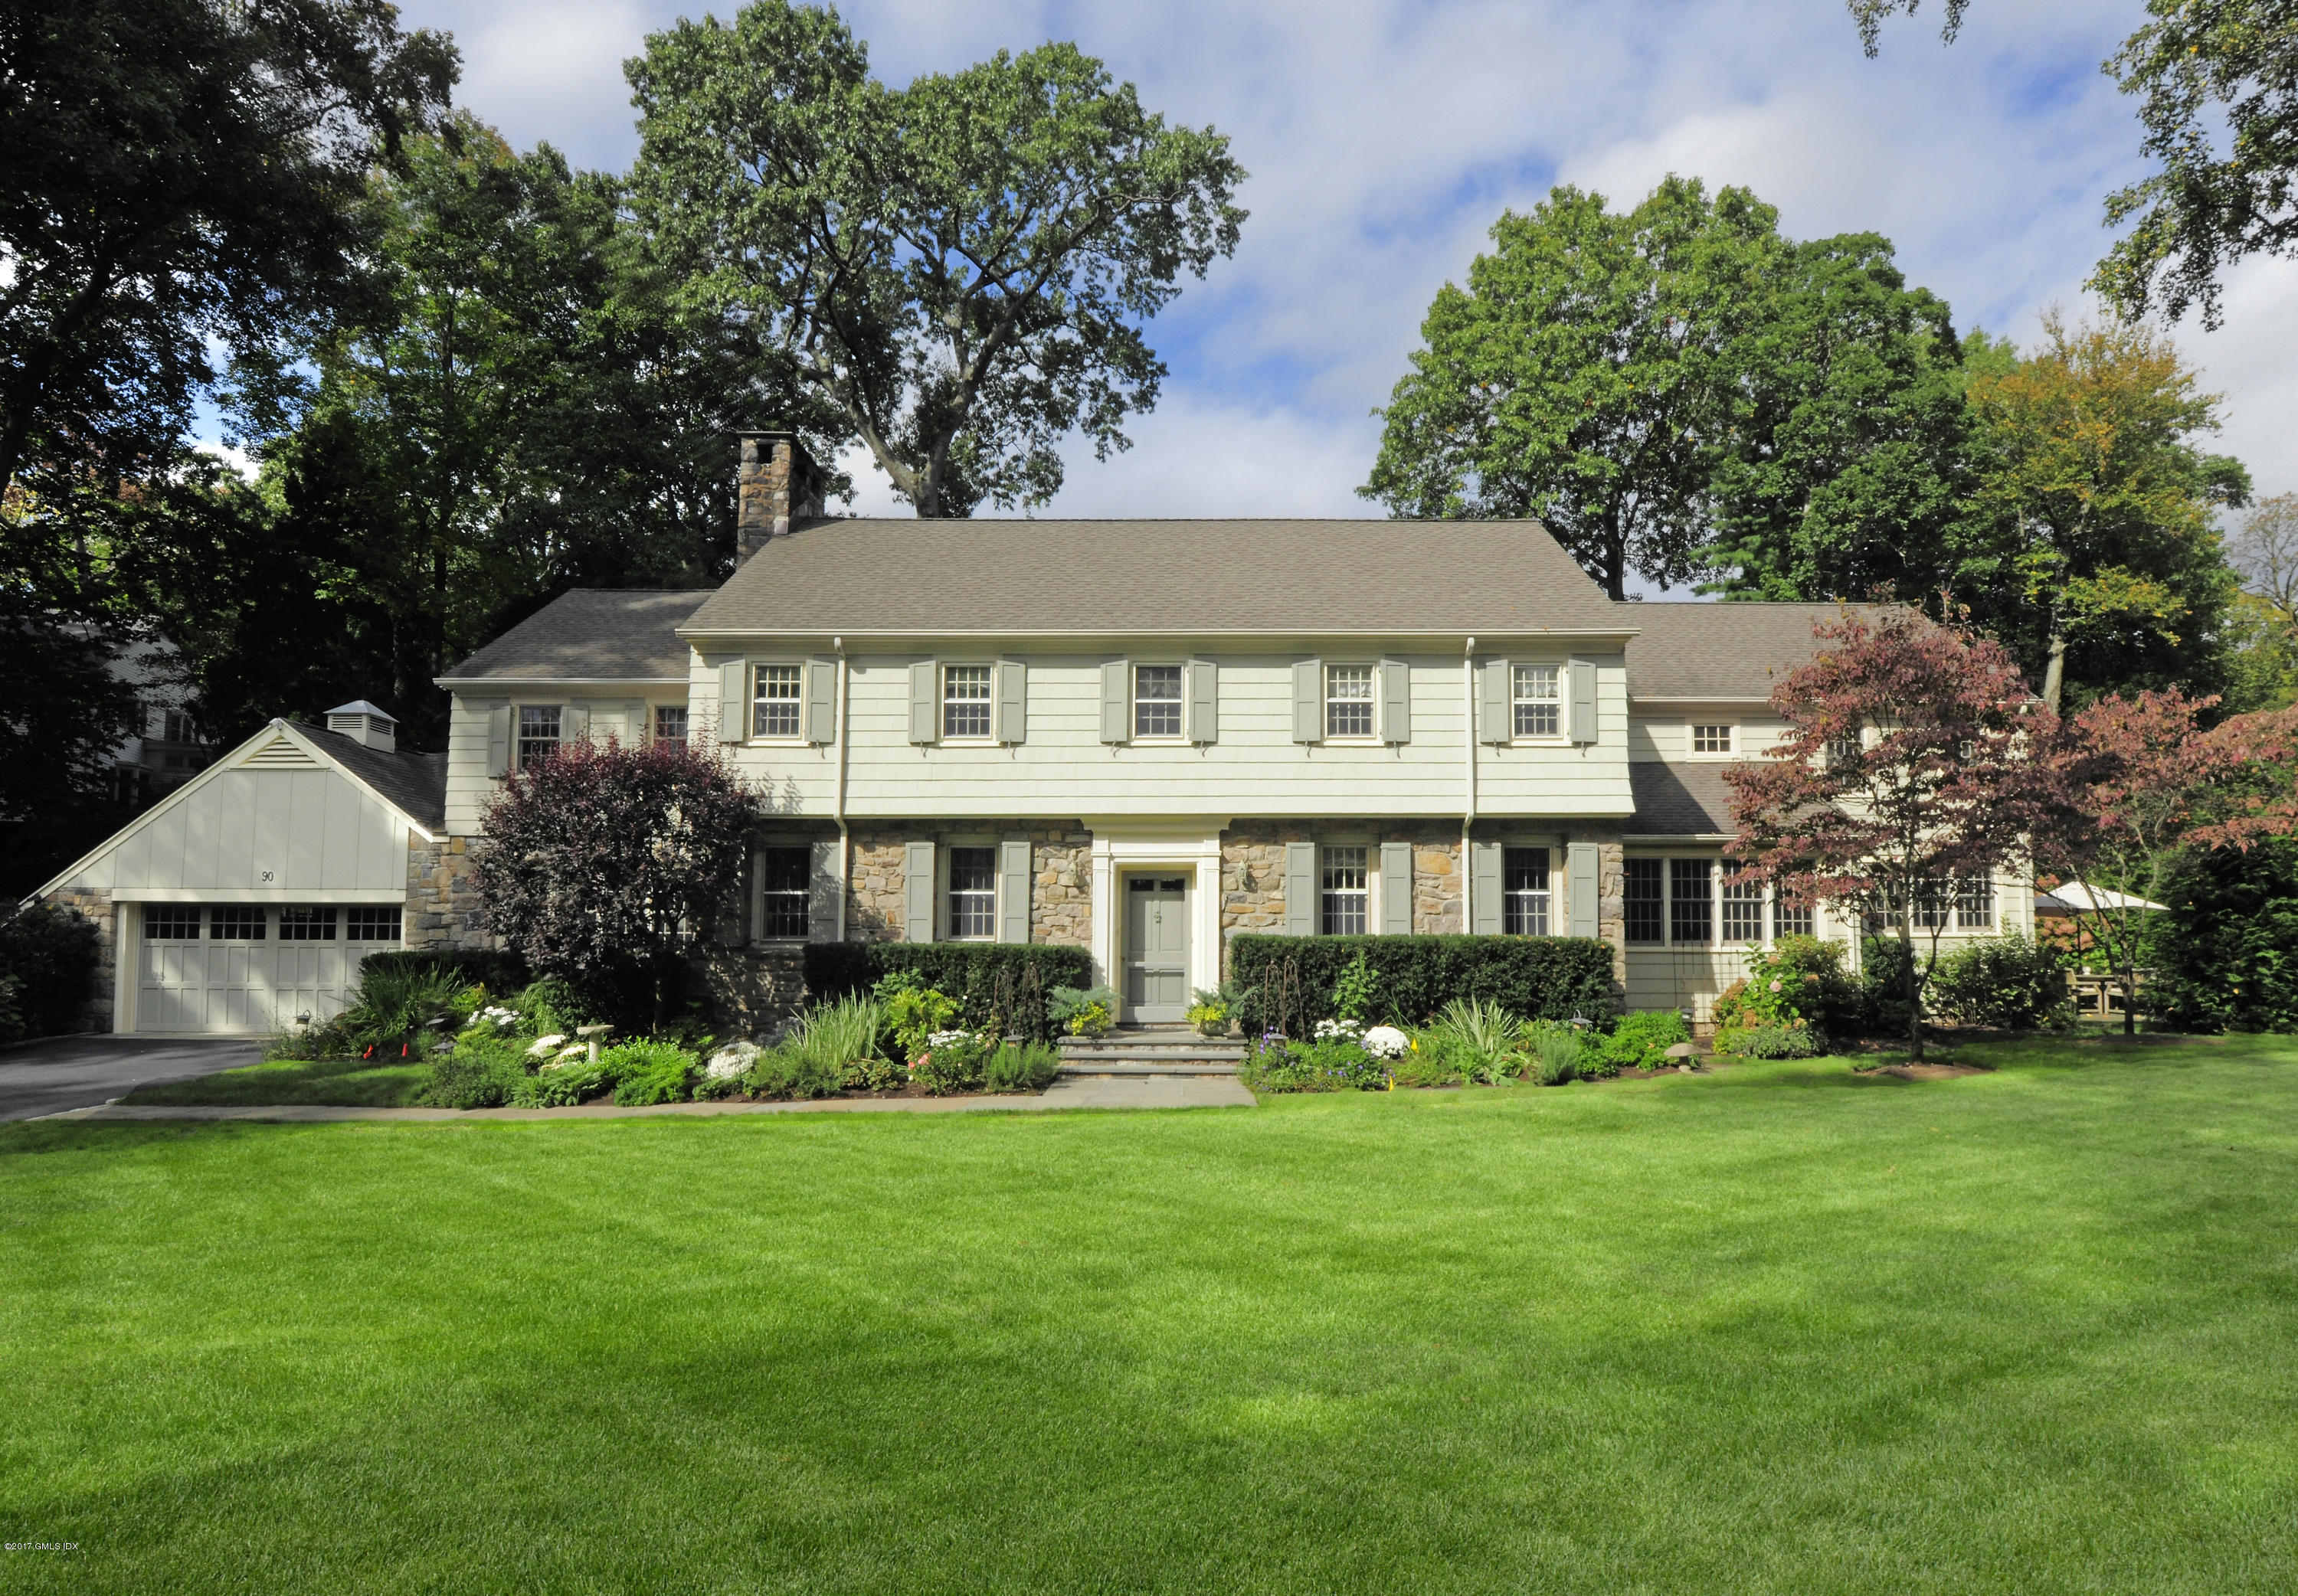 90 Orchard Drive,Greenwich,Connecticut 06830,4 Bedrooms Bedrooms,4 BathroomsBathrooms,Single family,Orchard,102330